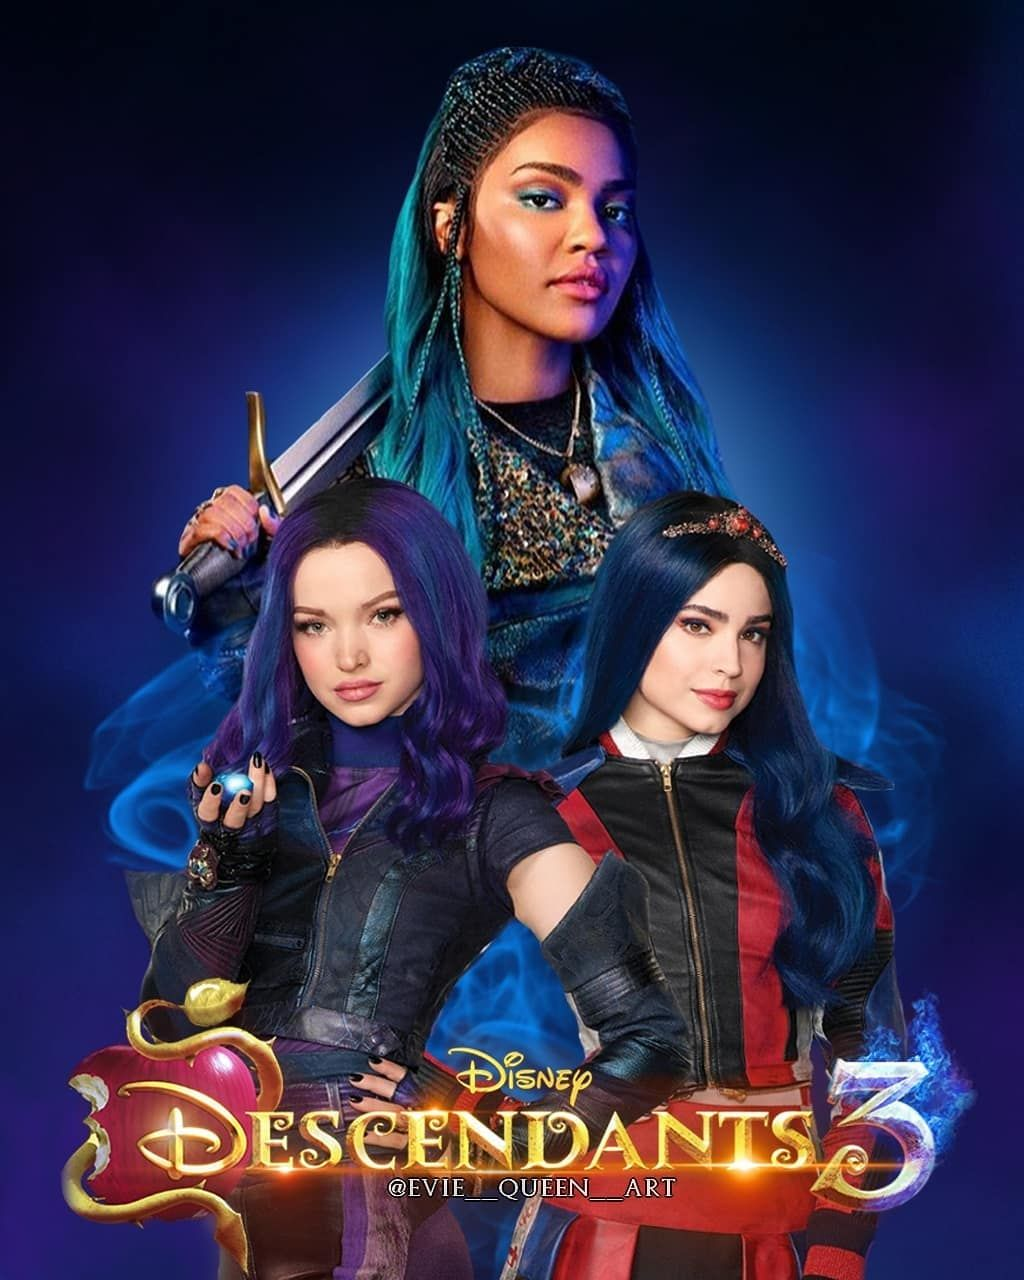 My New Poster To Descendants 3 Unofficial Poster I Used The New Photo Available To Me Write Co Disney Decendants Disney Descendants Disney Descendants 3